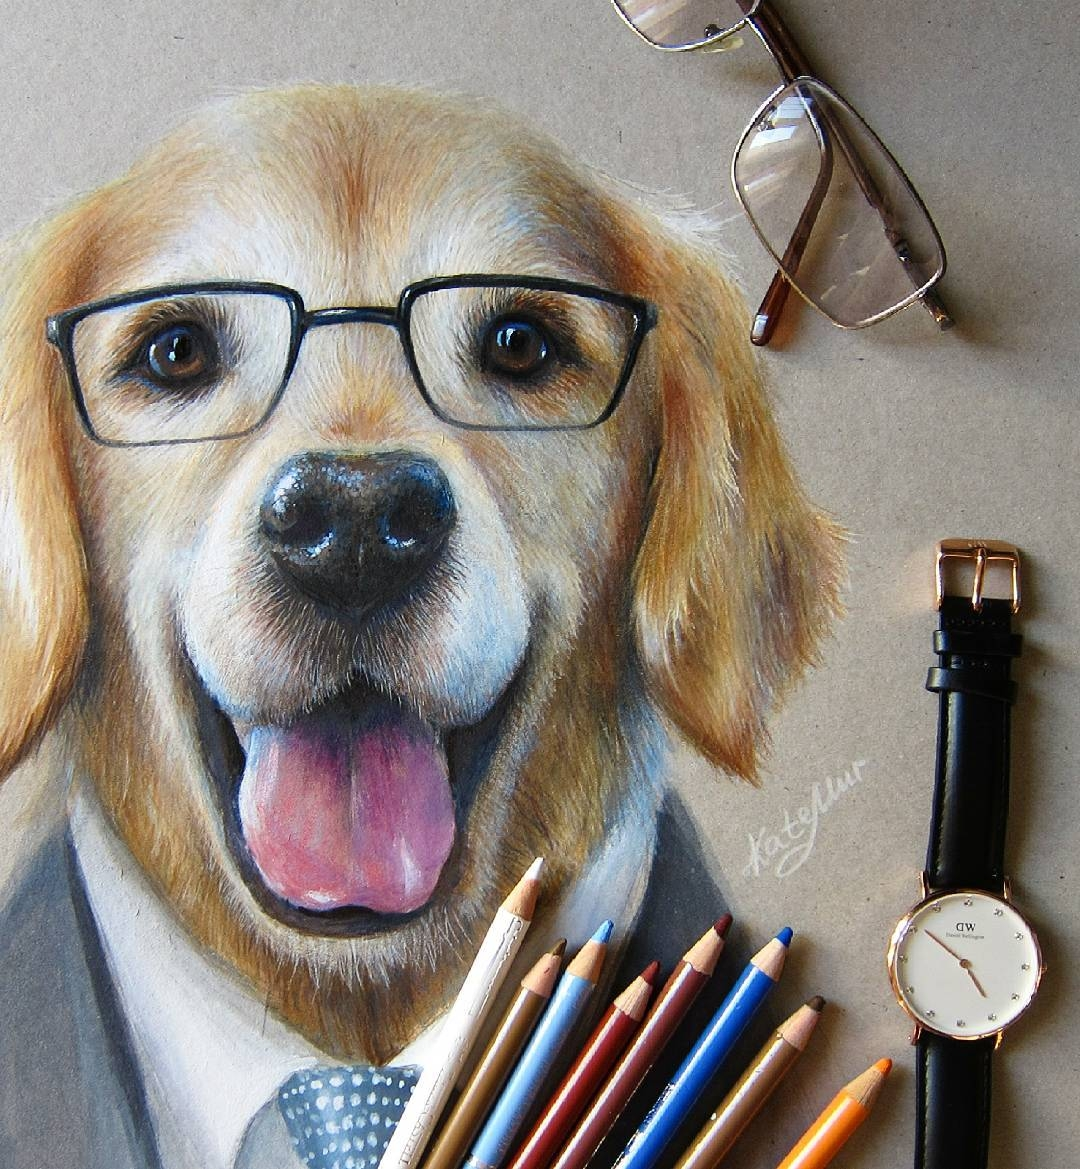 06-Dog-with-Glasses-Kate-Mur-Fantasy-and-Realism-in-Paintings-and-drawings-of-animals-www-designstack-co